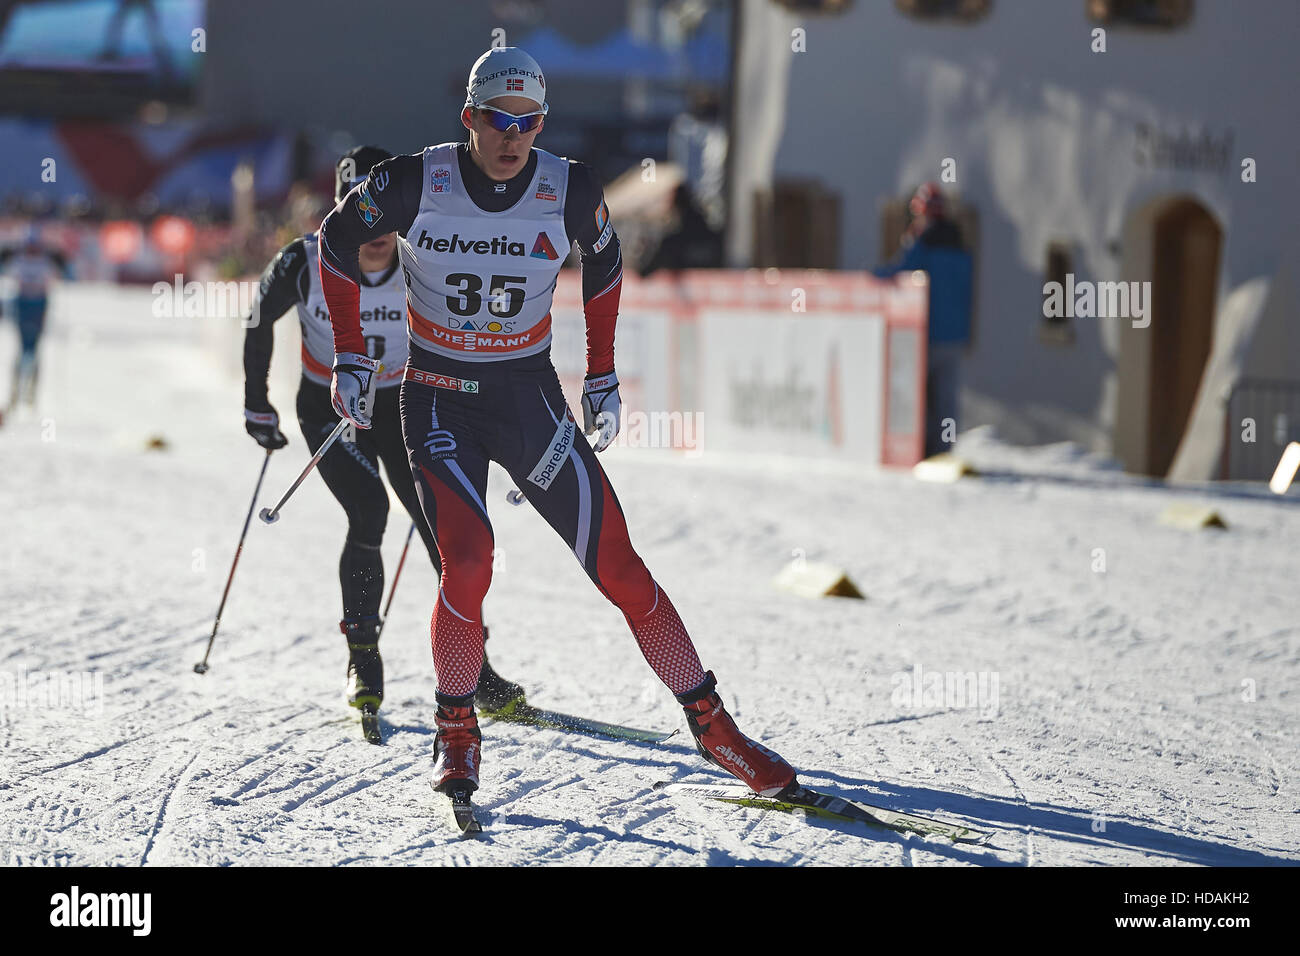 Davos, Switzerland, 10th December 2016. Anders Gloeersen during the Men's 30 km F competition at the FIS Cross - Stock Image